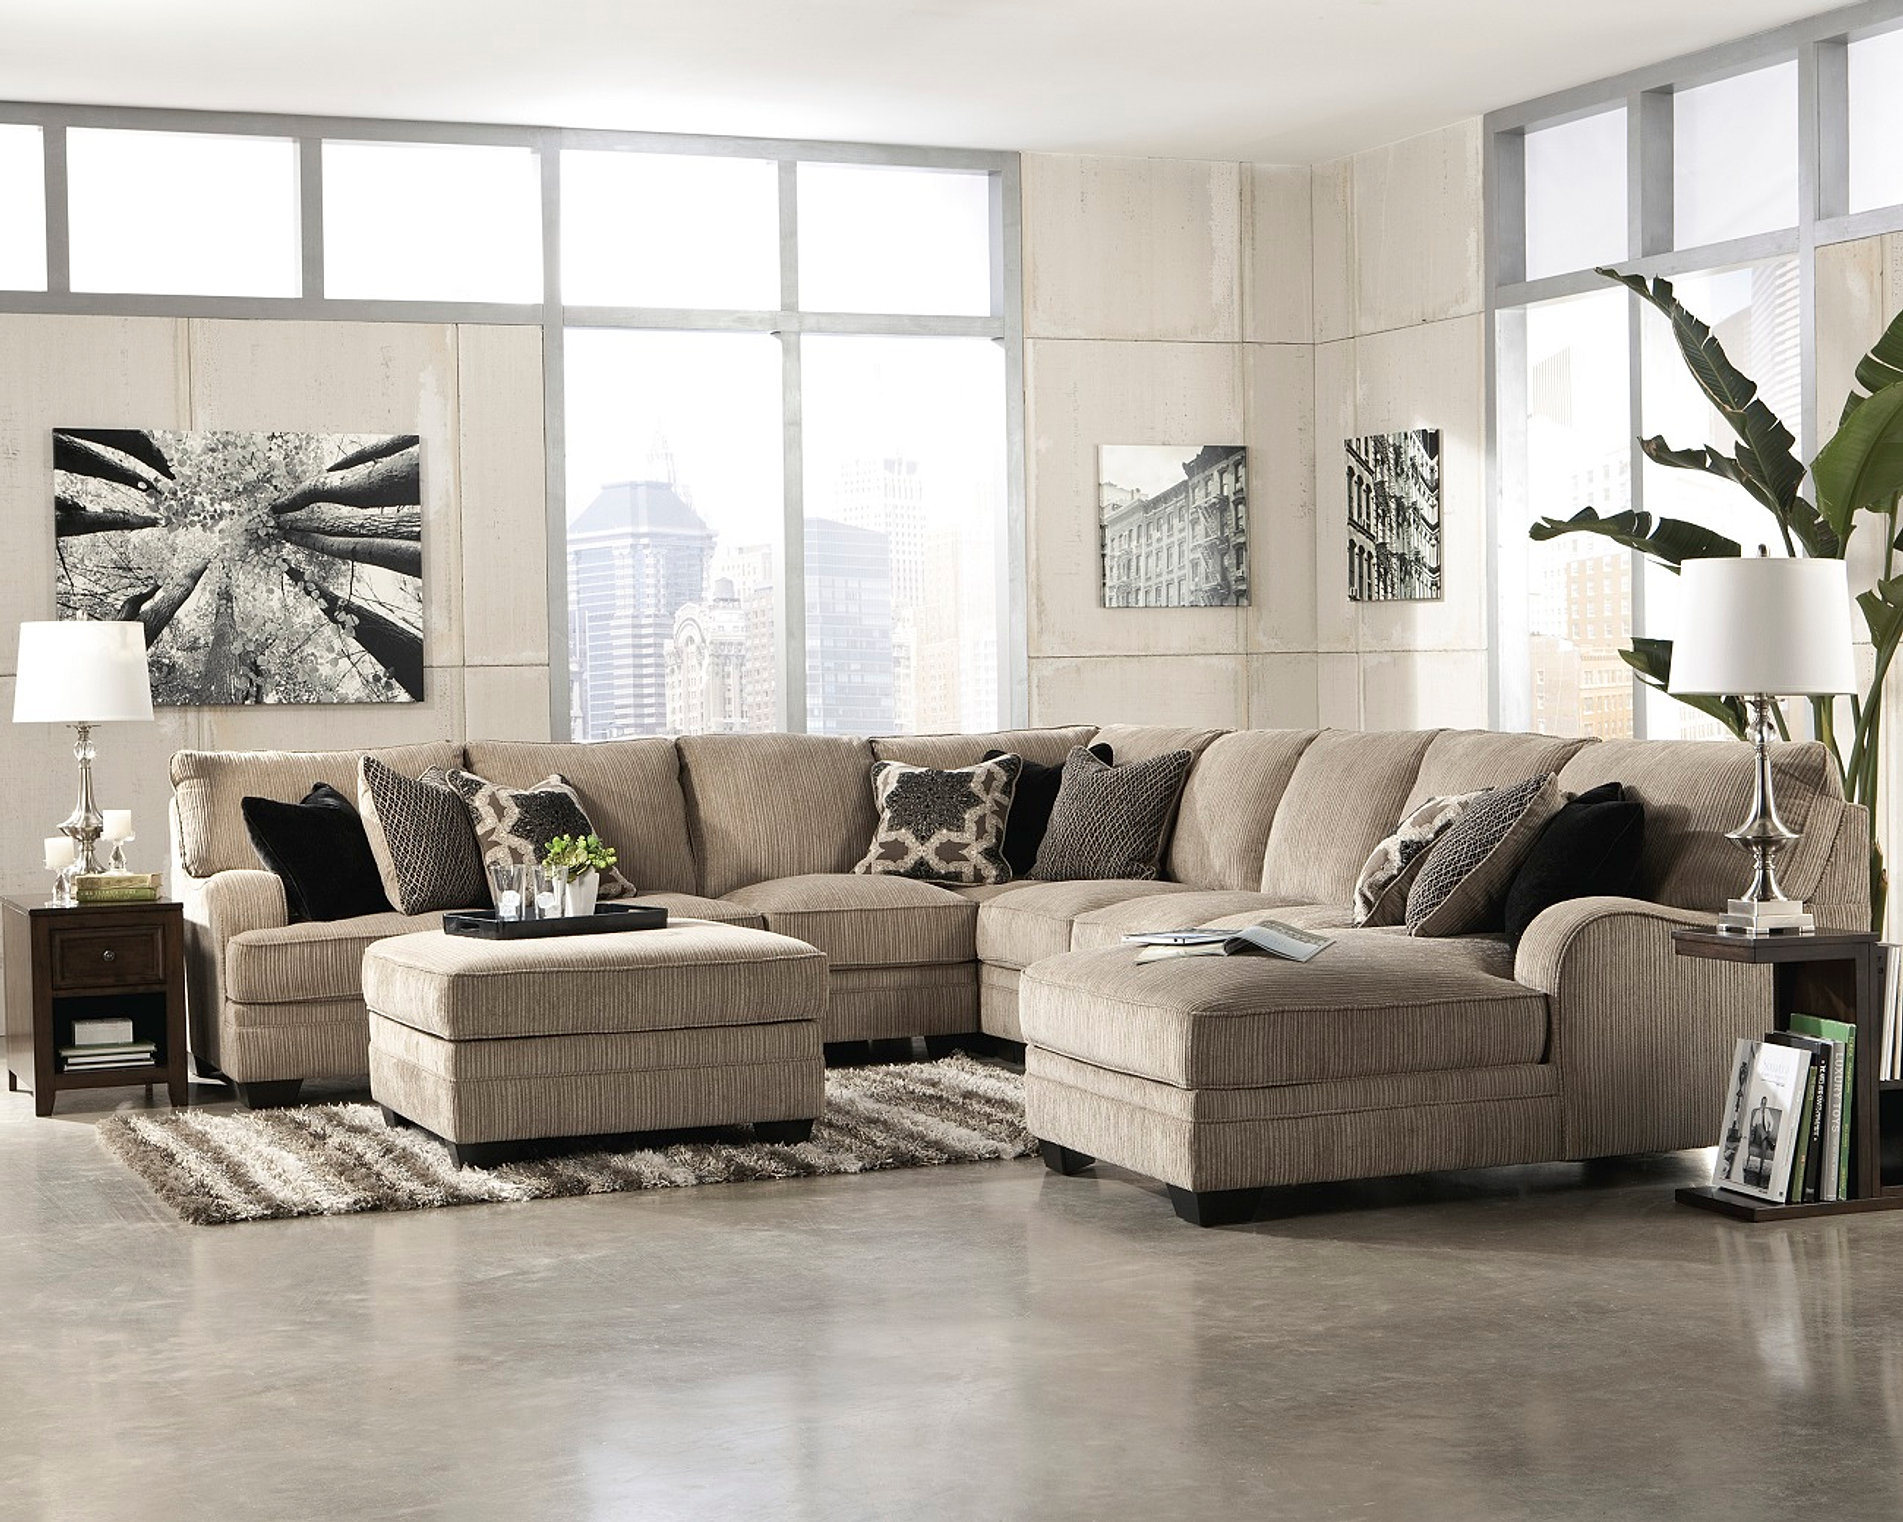 marvellous living room furniture winnipeg images - best image